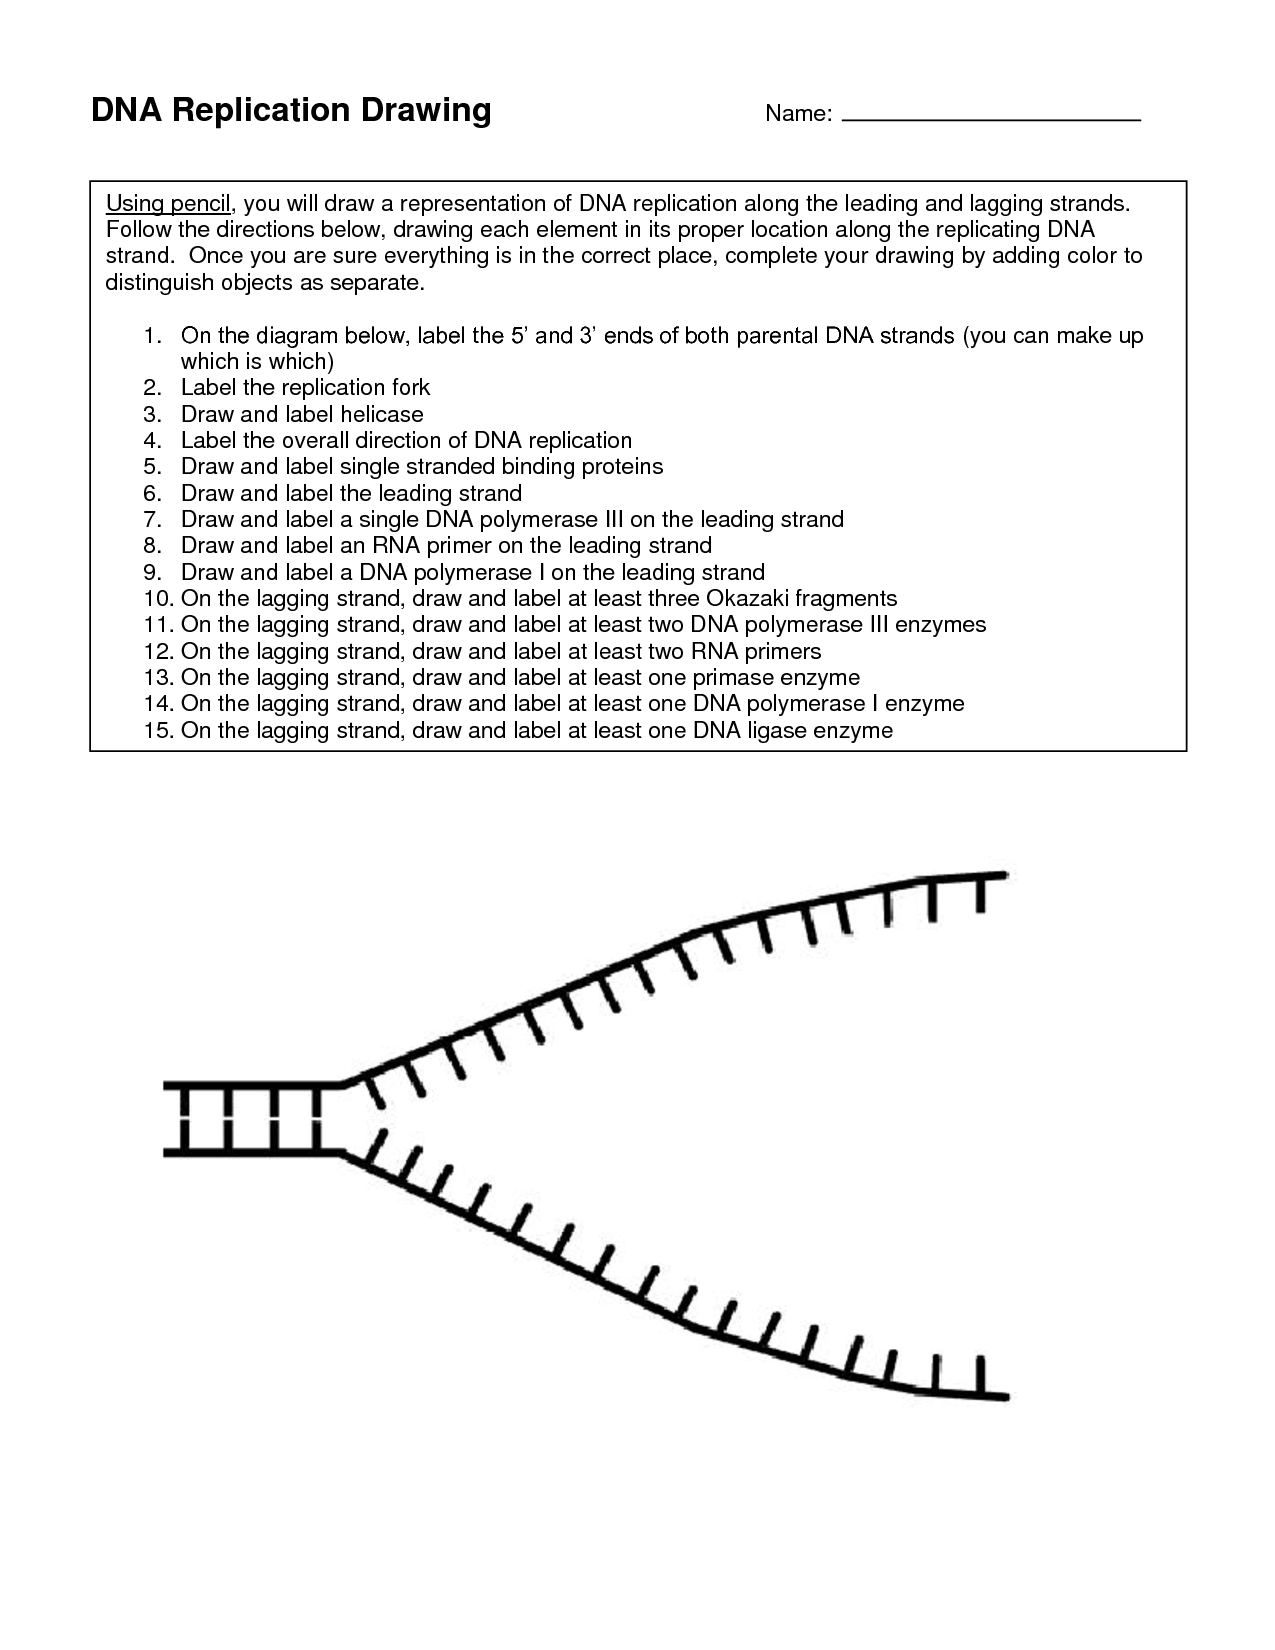 Worksheet Dna Worksheet dna replication worksheet 9th grade delwfg com pichaglobal